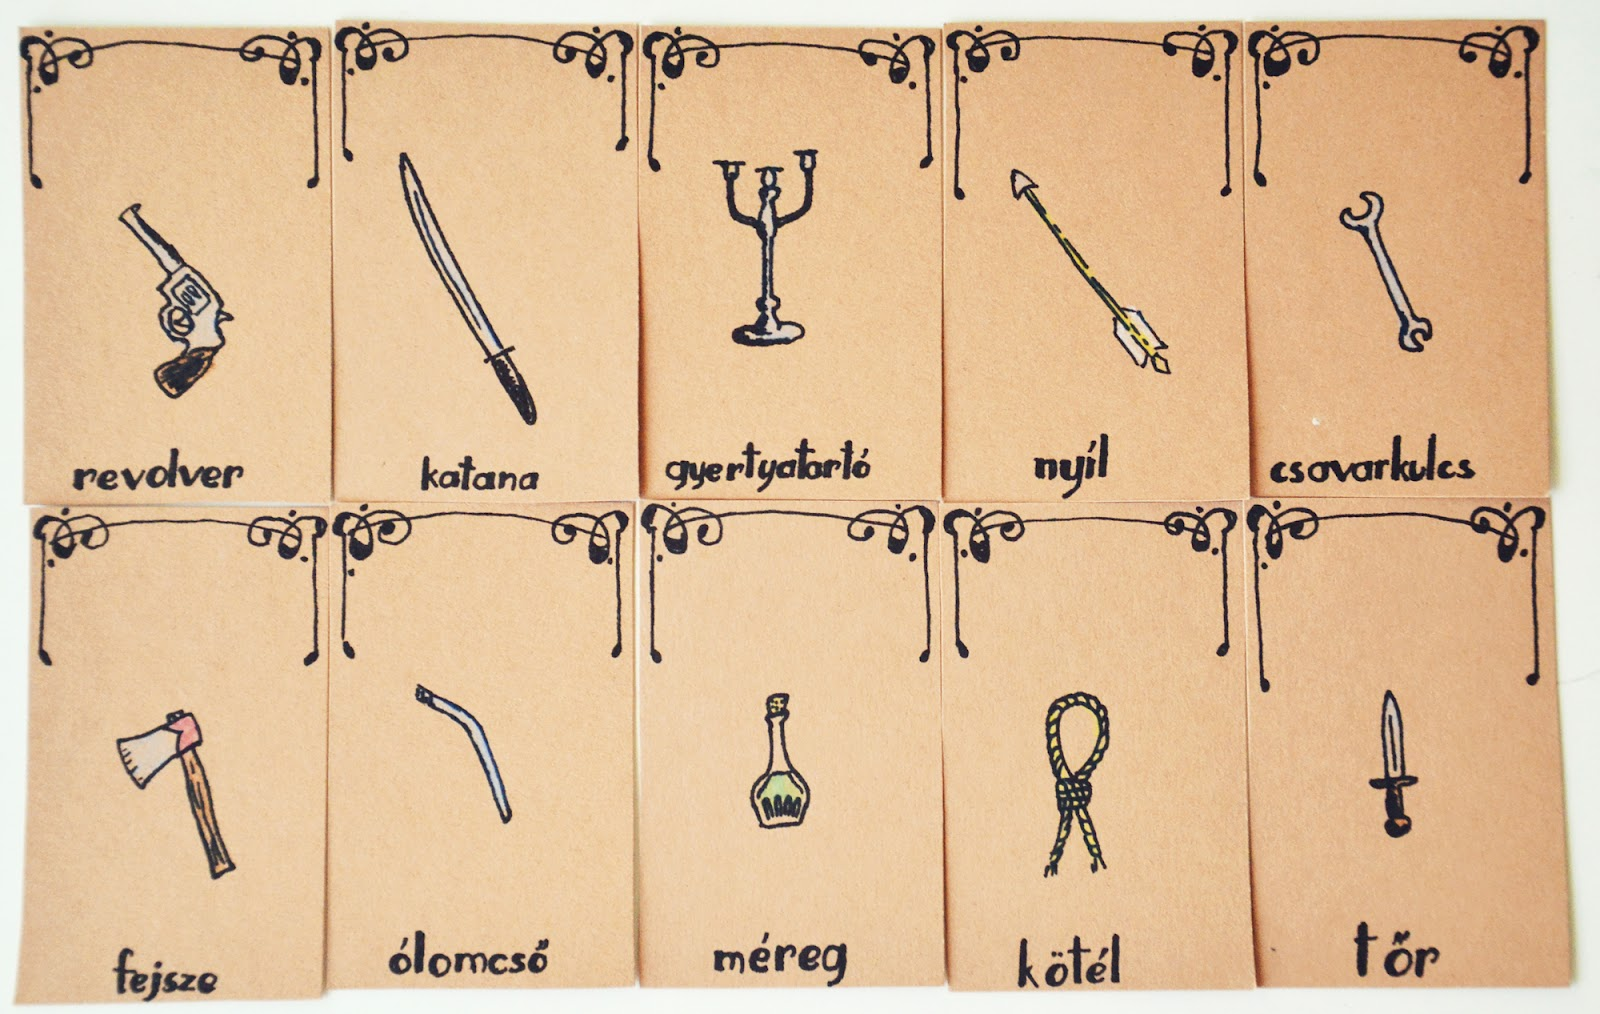 Cluedo Weapon Cards